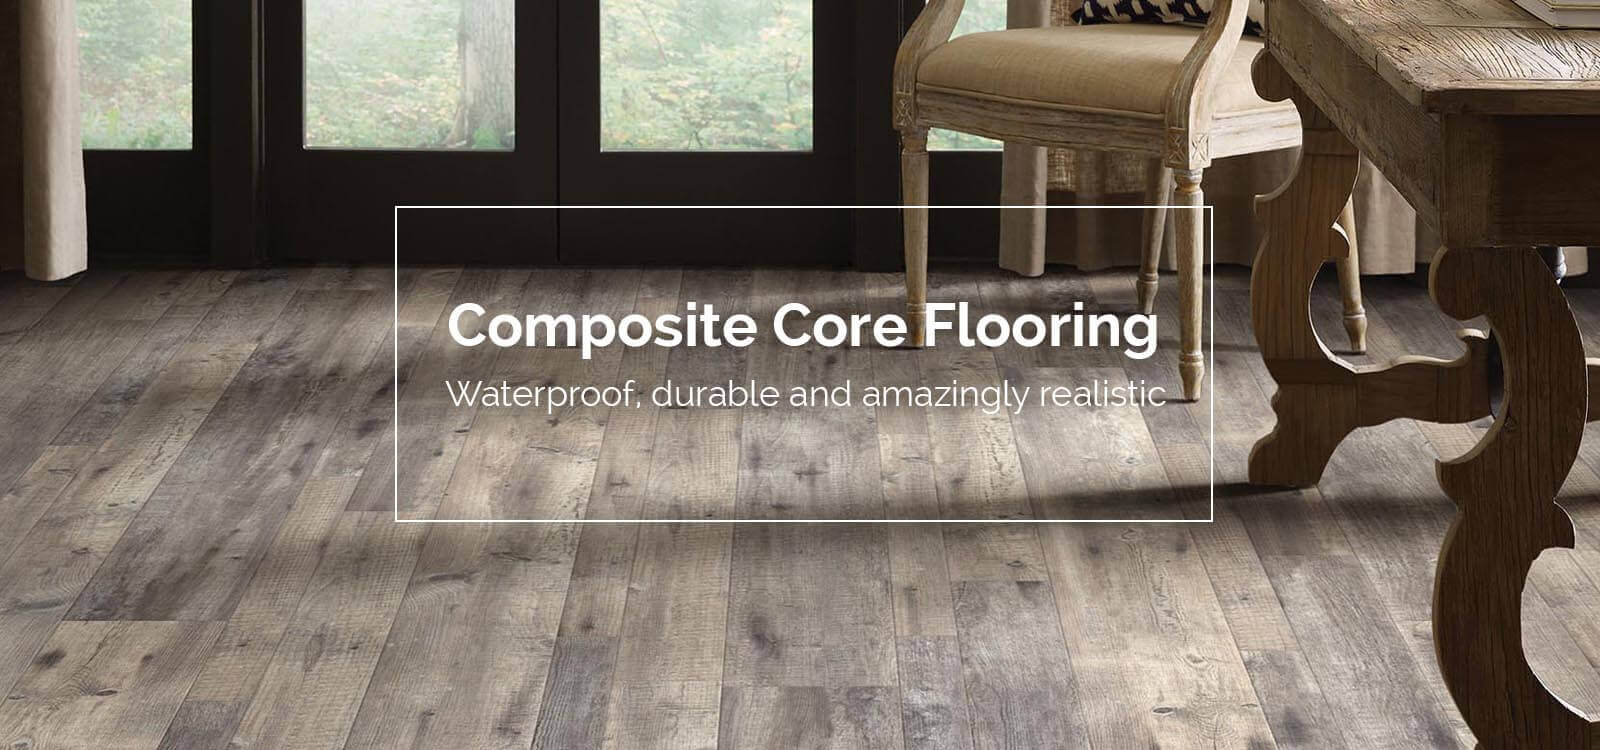 Composite Core Flooring